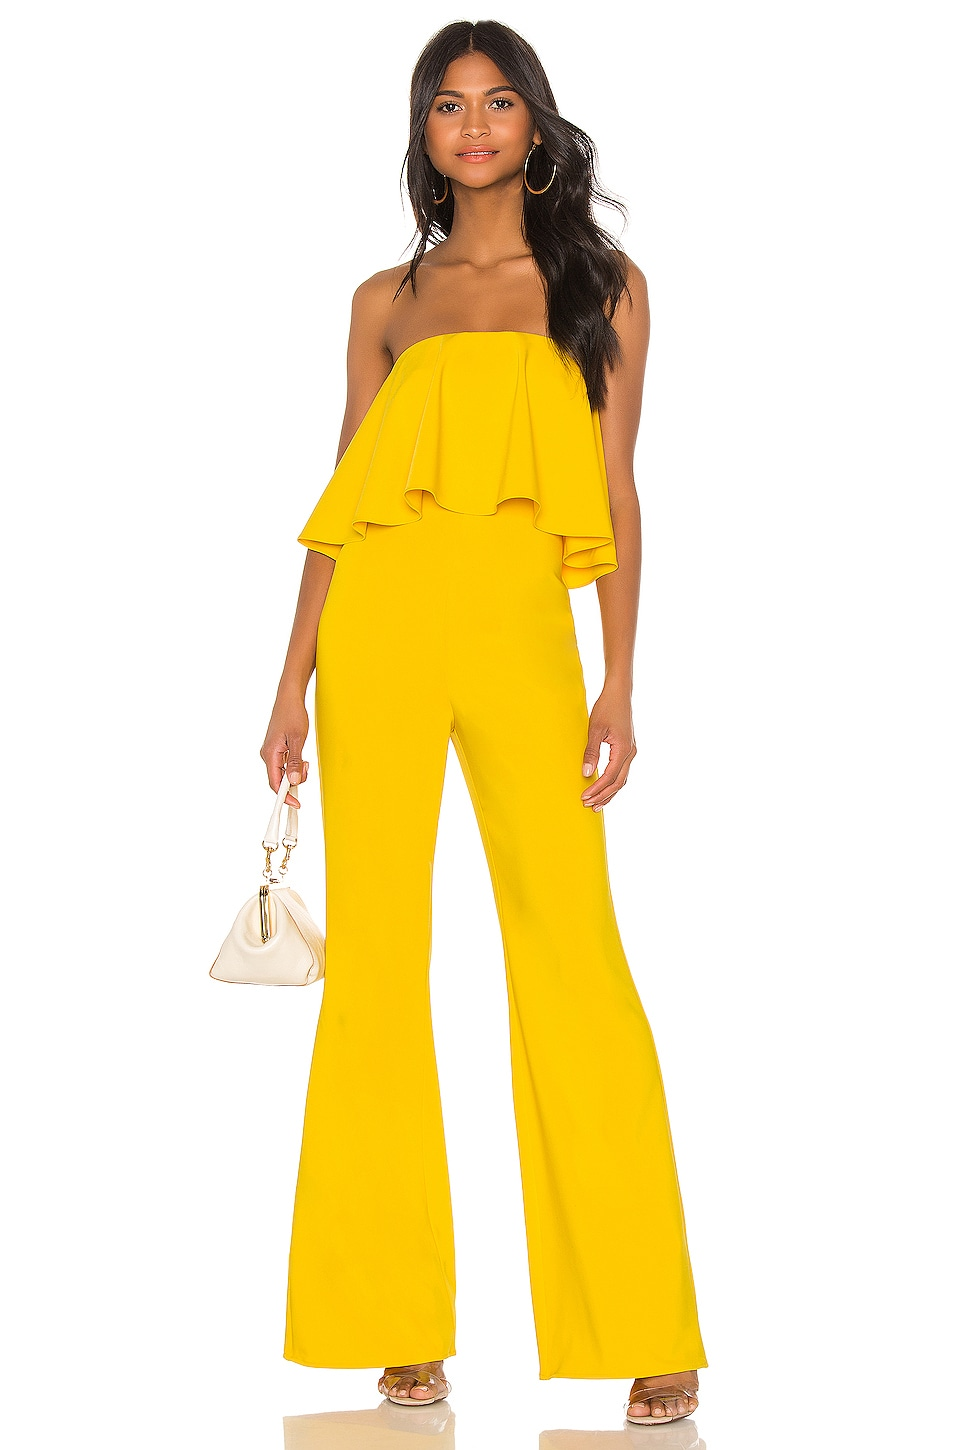 Lovers + Friends Nikki Jumpsuit in Yellow